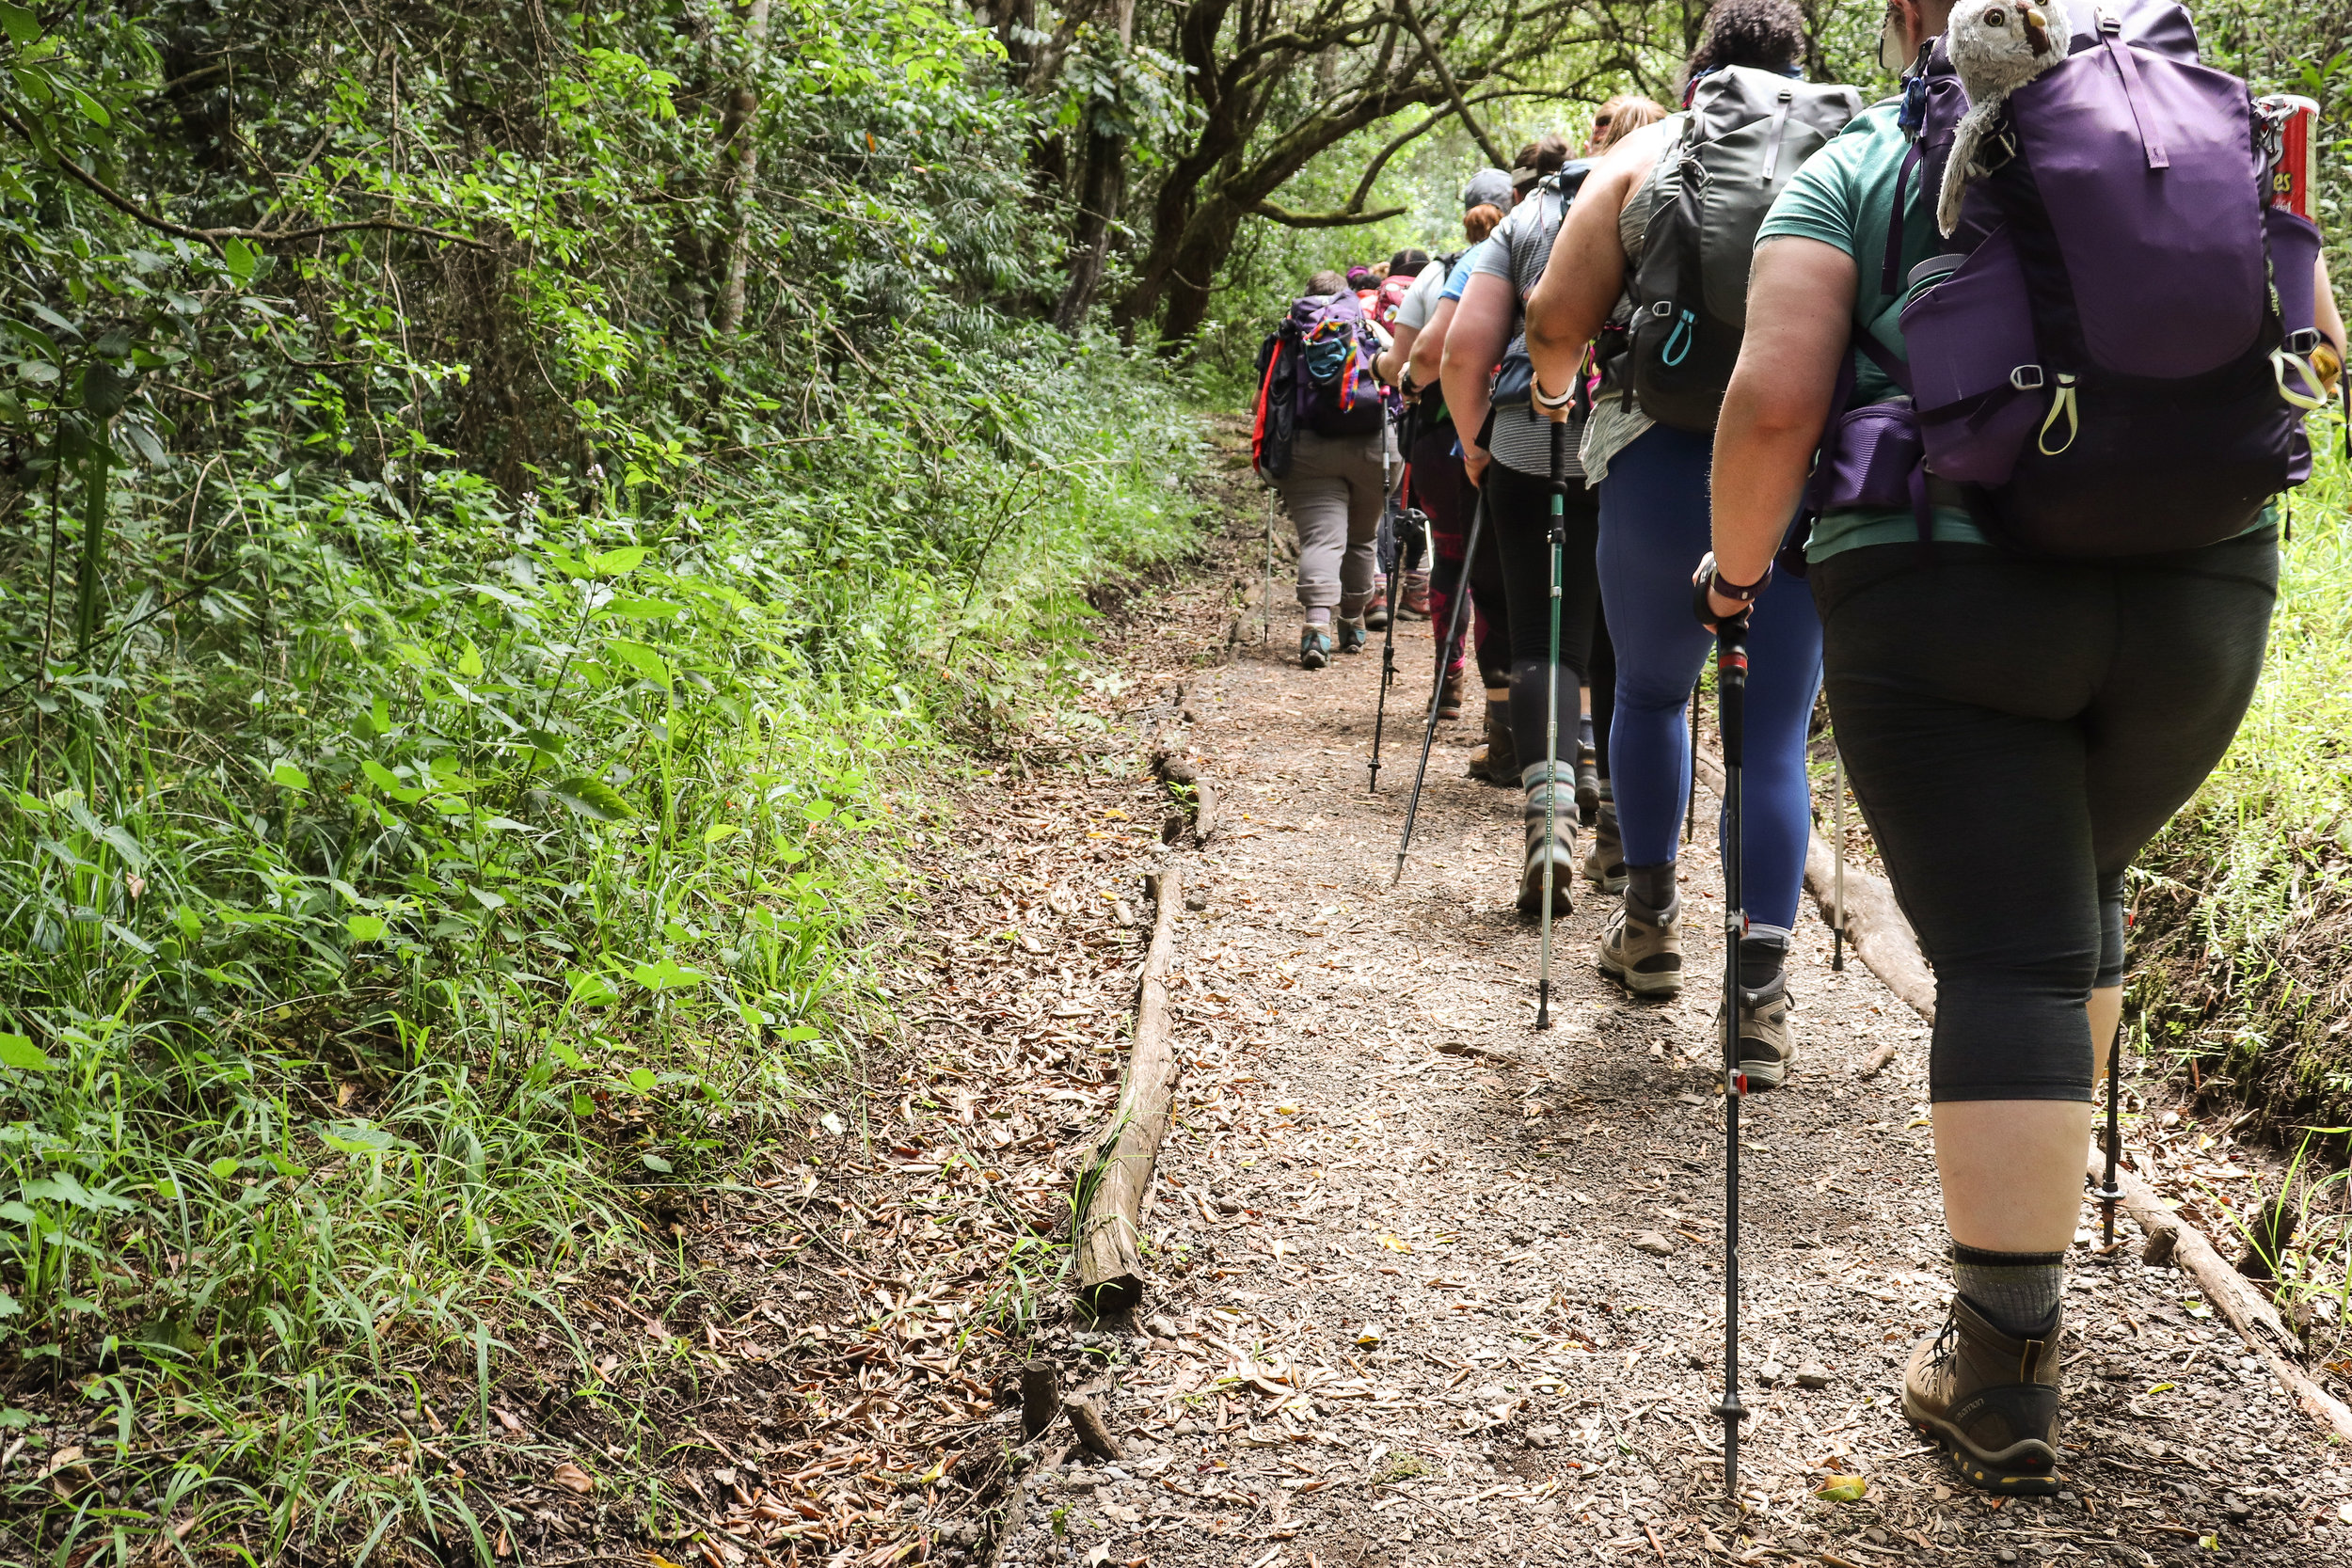 DAY 2:TWENDE! (aka LET'S GO!) - RONGAI GATE to SIMBA CAMPElevation: 2,364 - 2,671 mHiking Time: 4 - 5 hoursDistance: 7 km